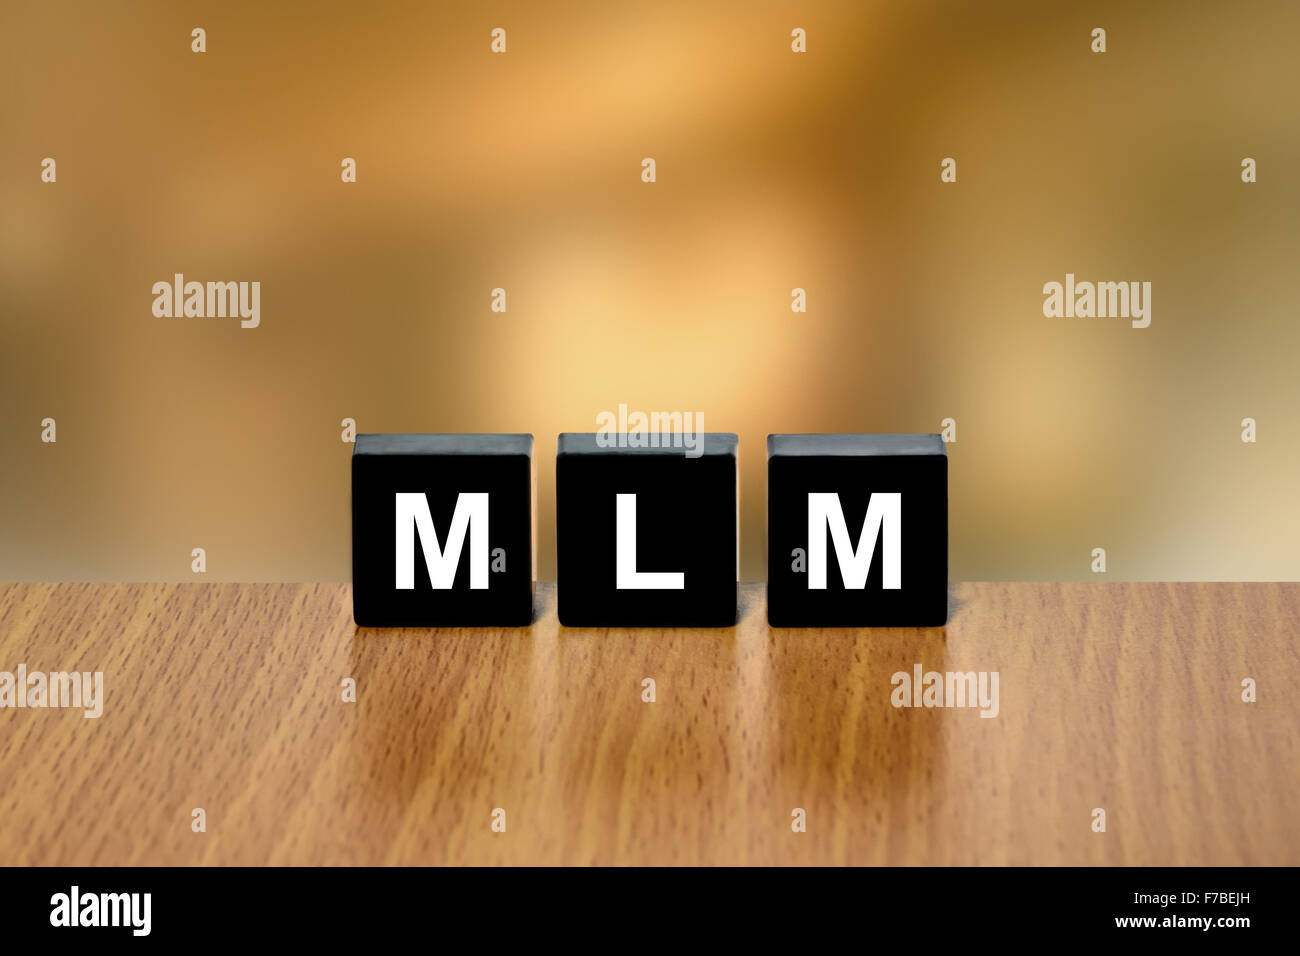 MLM or Multi Level Marketing on black block with blurred background Stock Photo